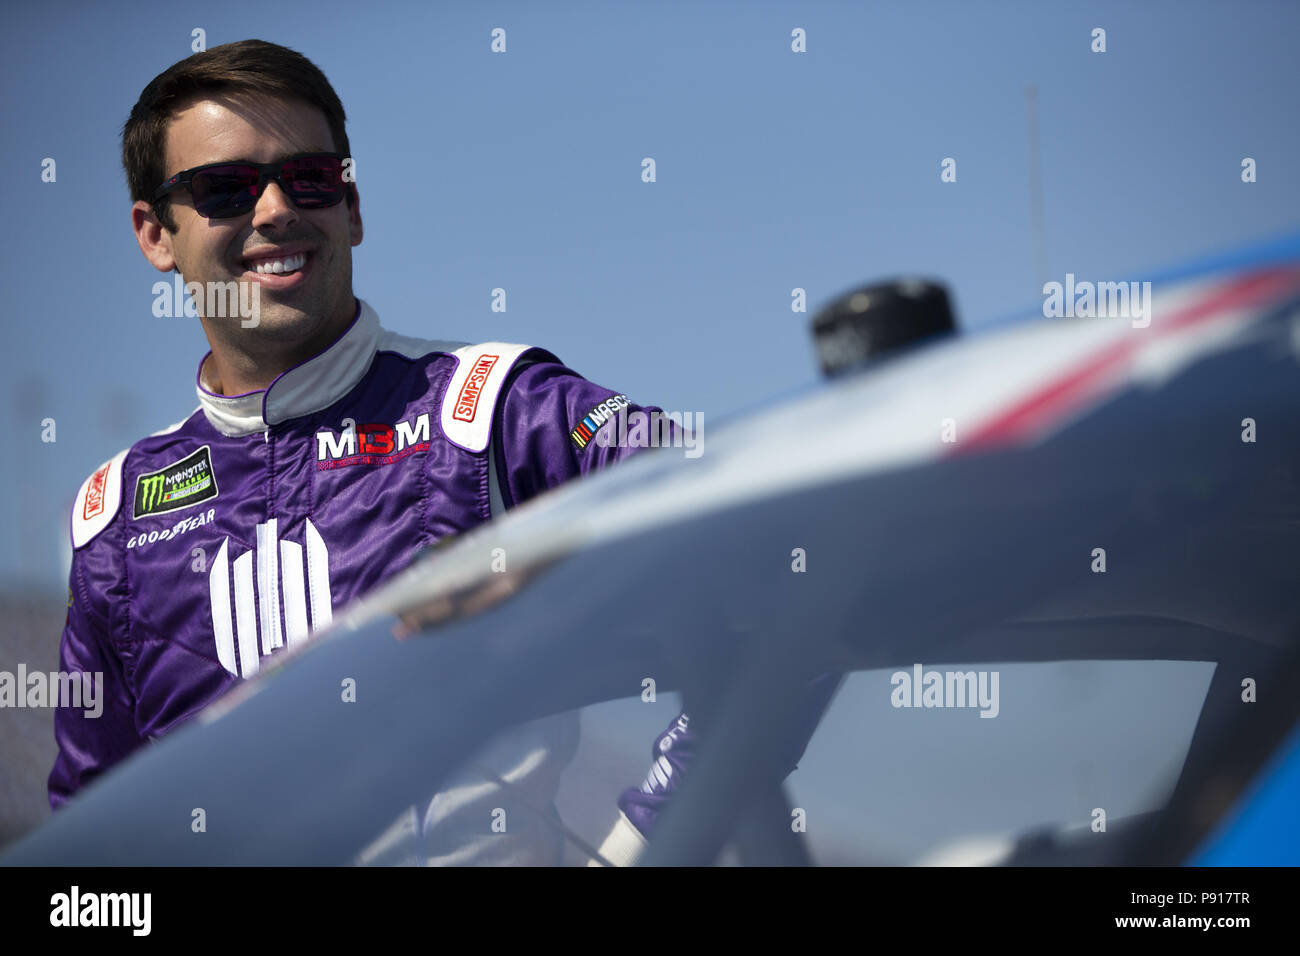 Sparta, Kentucky, USA. 13th July, 2018. Timmy Hill (66) gets ready to qualify for the Alsco 300 at Kentucky Speedway in Sparta, Kentucky. Credit: Stephen A. Arce/ASP/ZUMA Wire/Alamy Live News - Stock Image